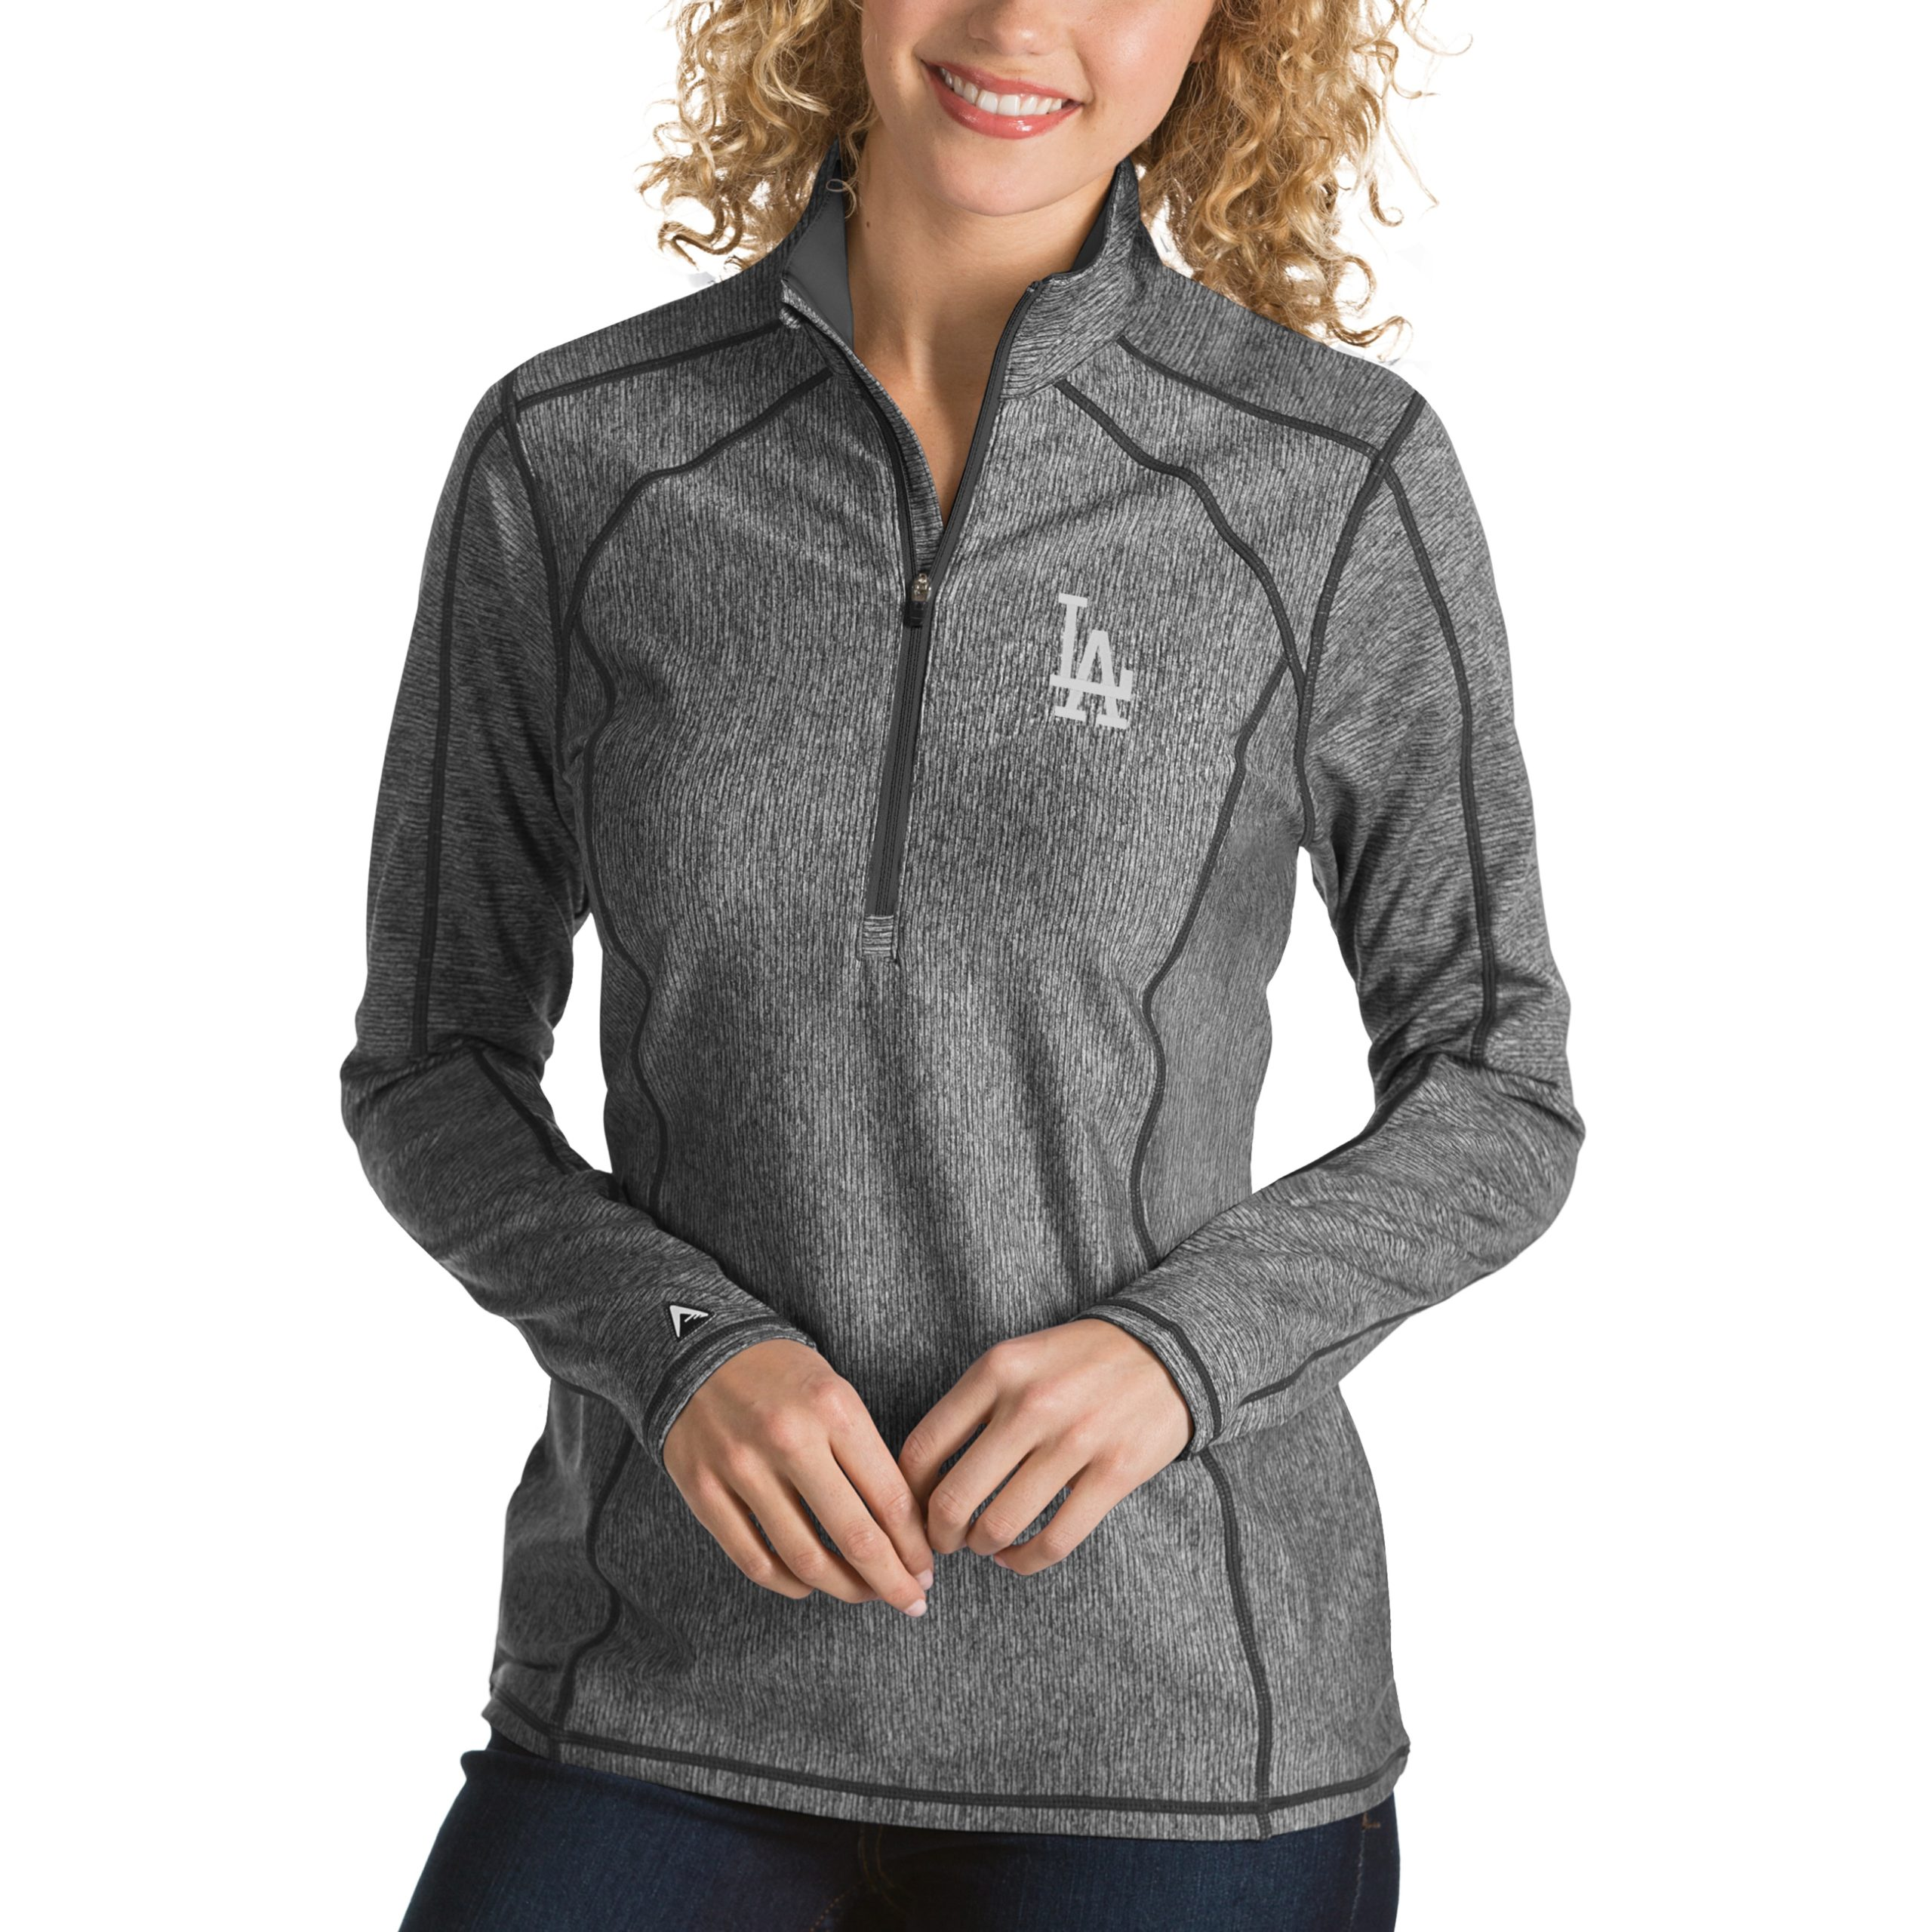 Los Angeles Dodgers Antigua Women's Tempo Desert Dry 1/4-Zip Pullover Jacket - Heathered Charcoal